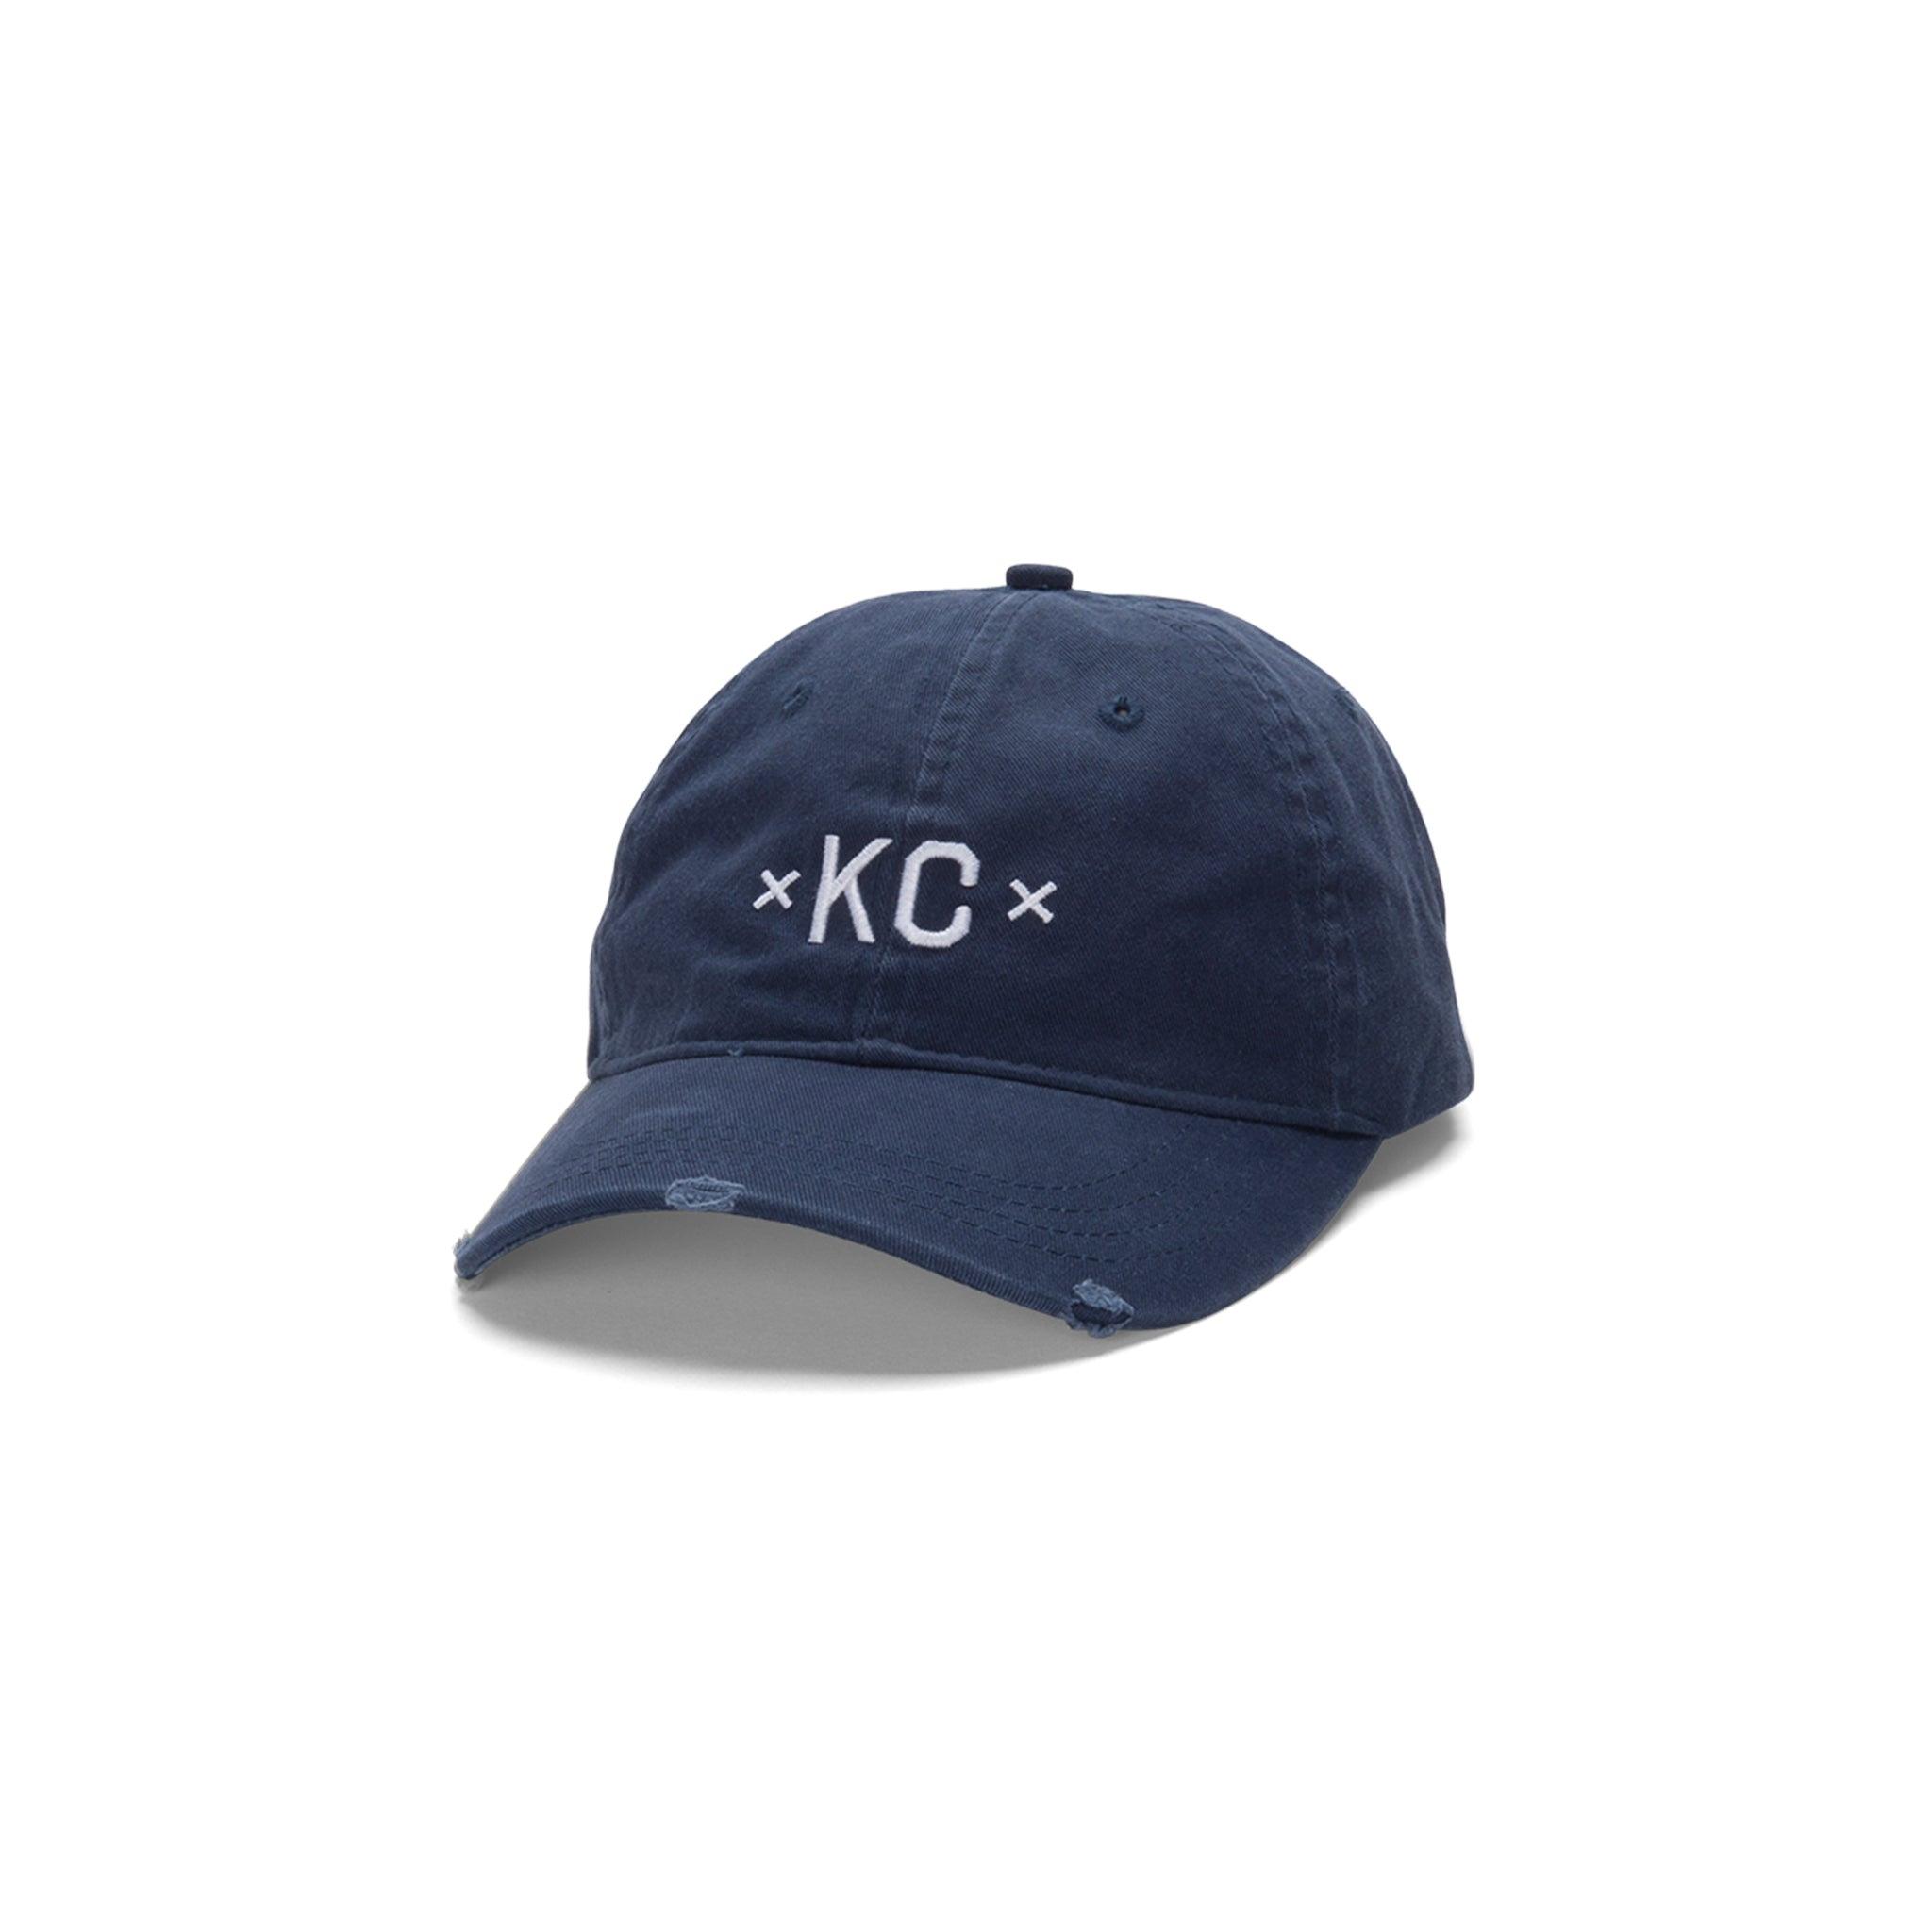 Signature KC Dad Hat - Navy